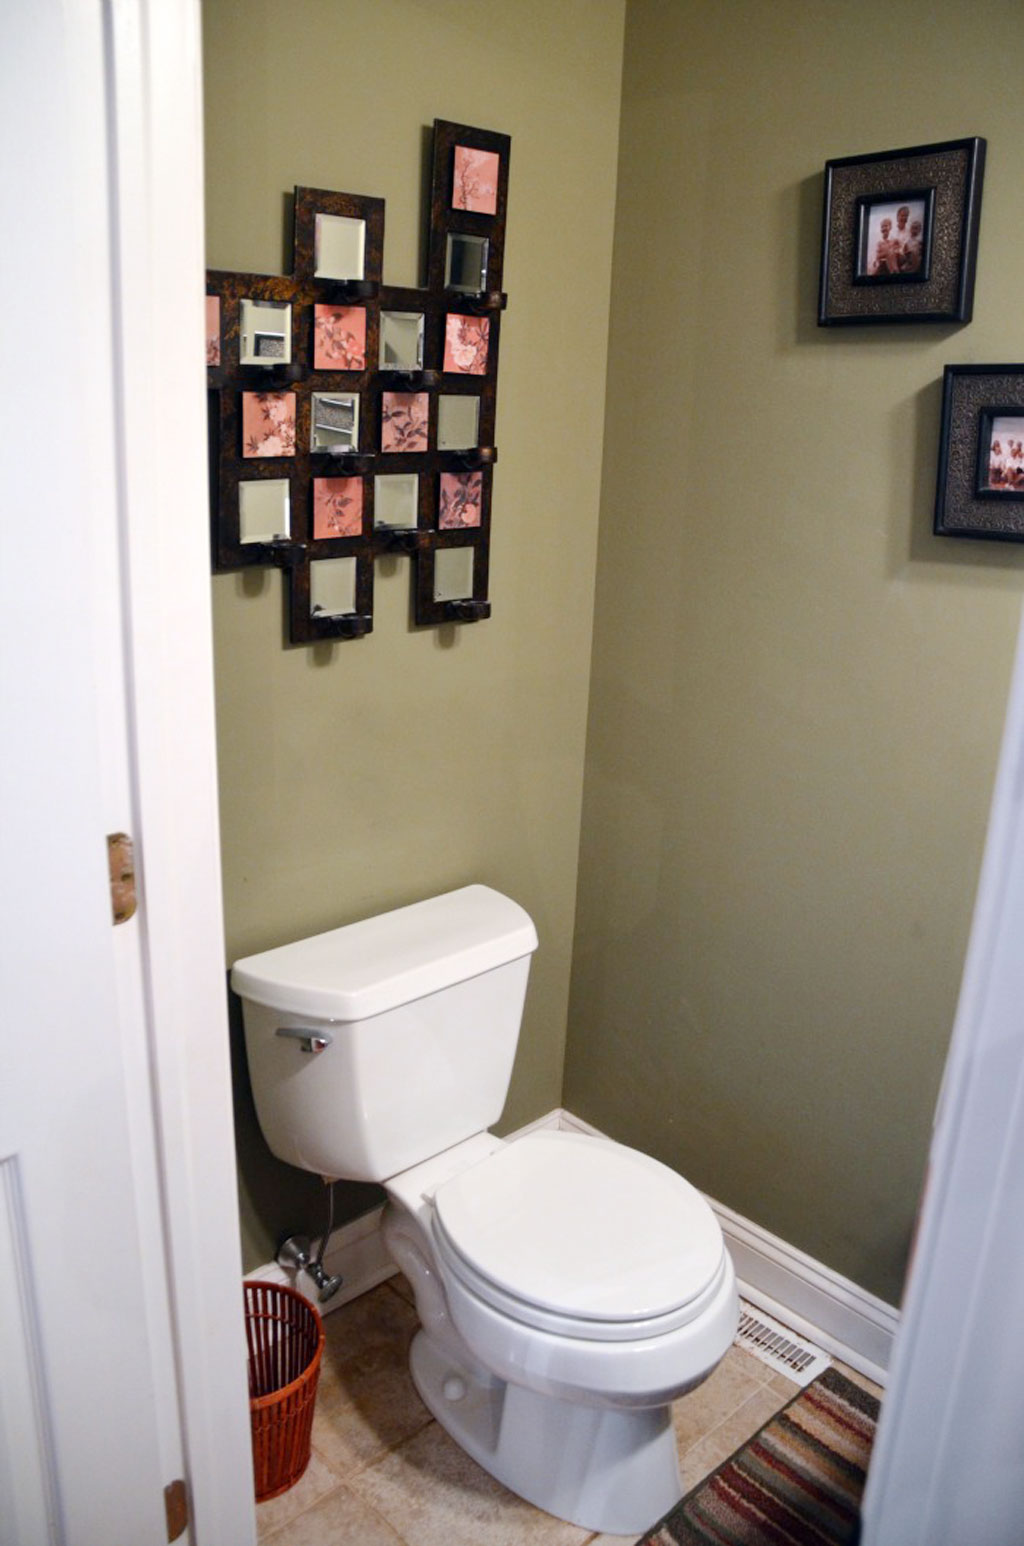 Decorating a half bath - Photo Gallery Of The Half Bath Orange With Lamp Decor